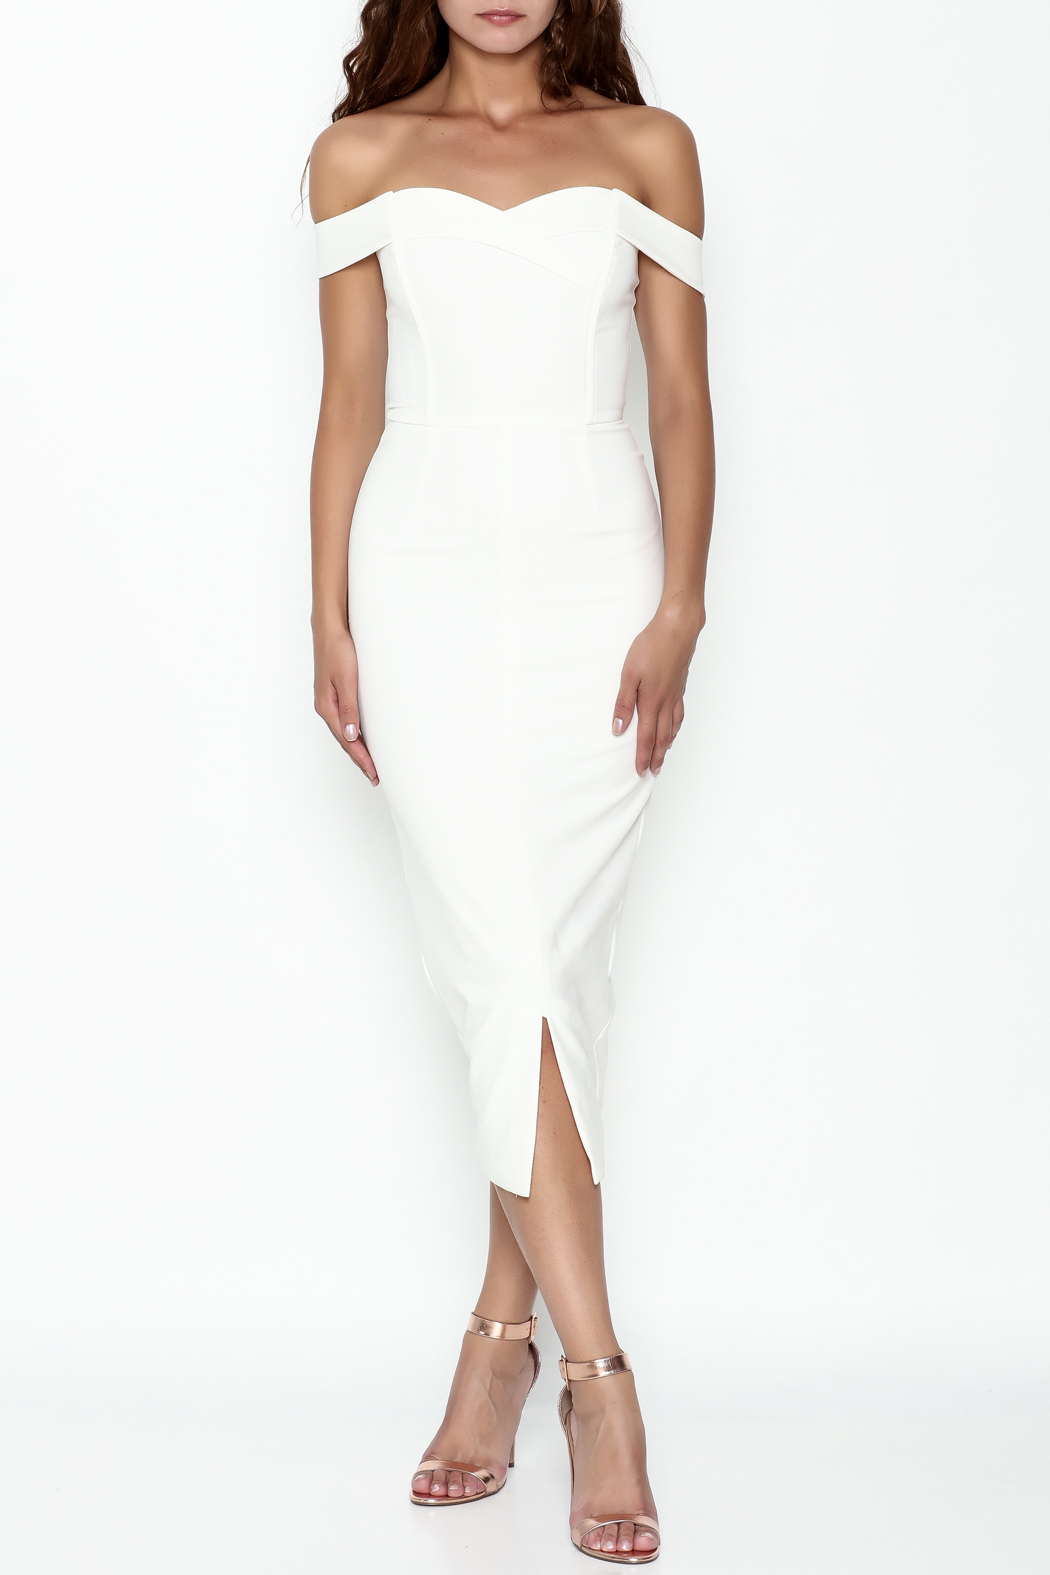 LAVISH ALICE Bardot Fitted Dress - Main Image